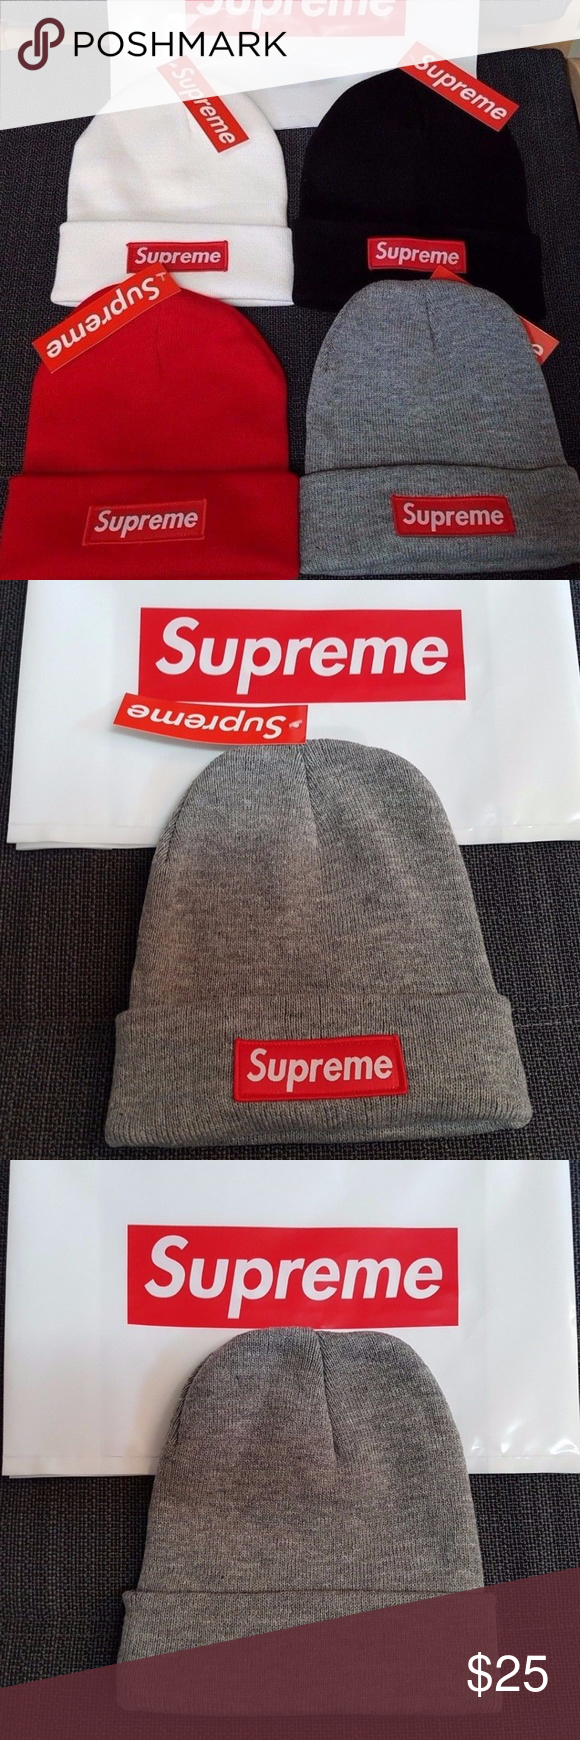 7d5ae96347ae7 Supreme Beanie Red Black Gray White Classic Logo Supreme Beanie Brand New  with Tags Some of